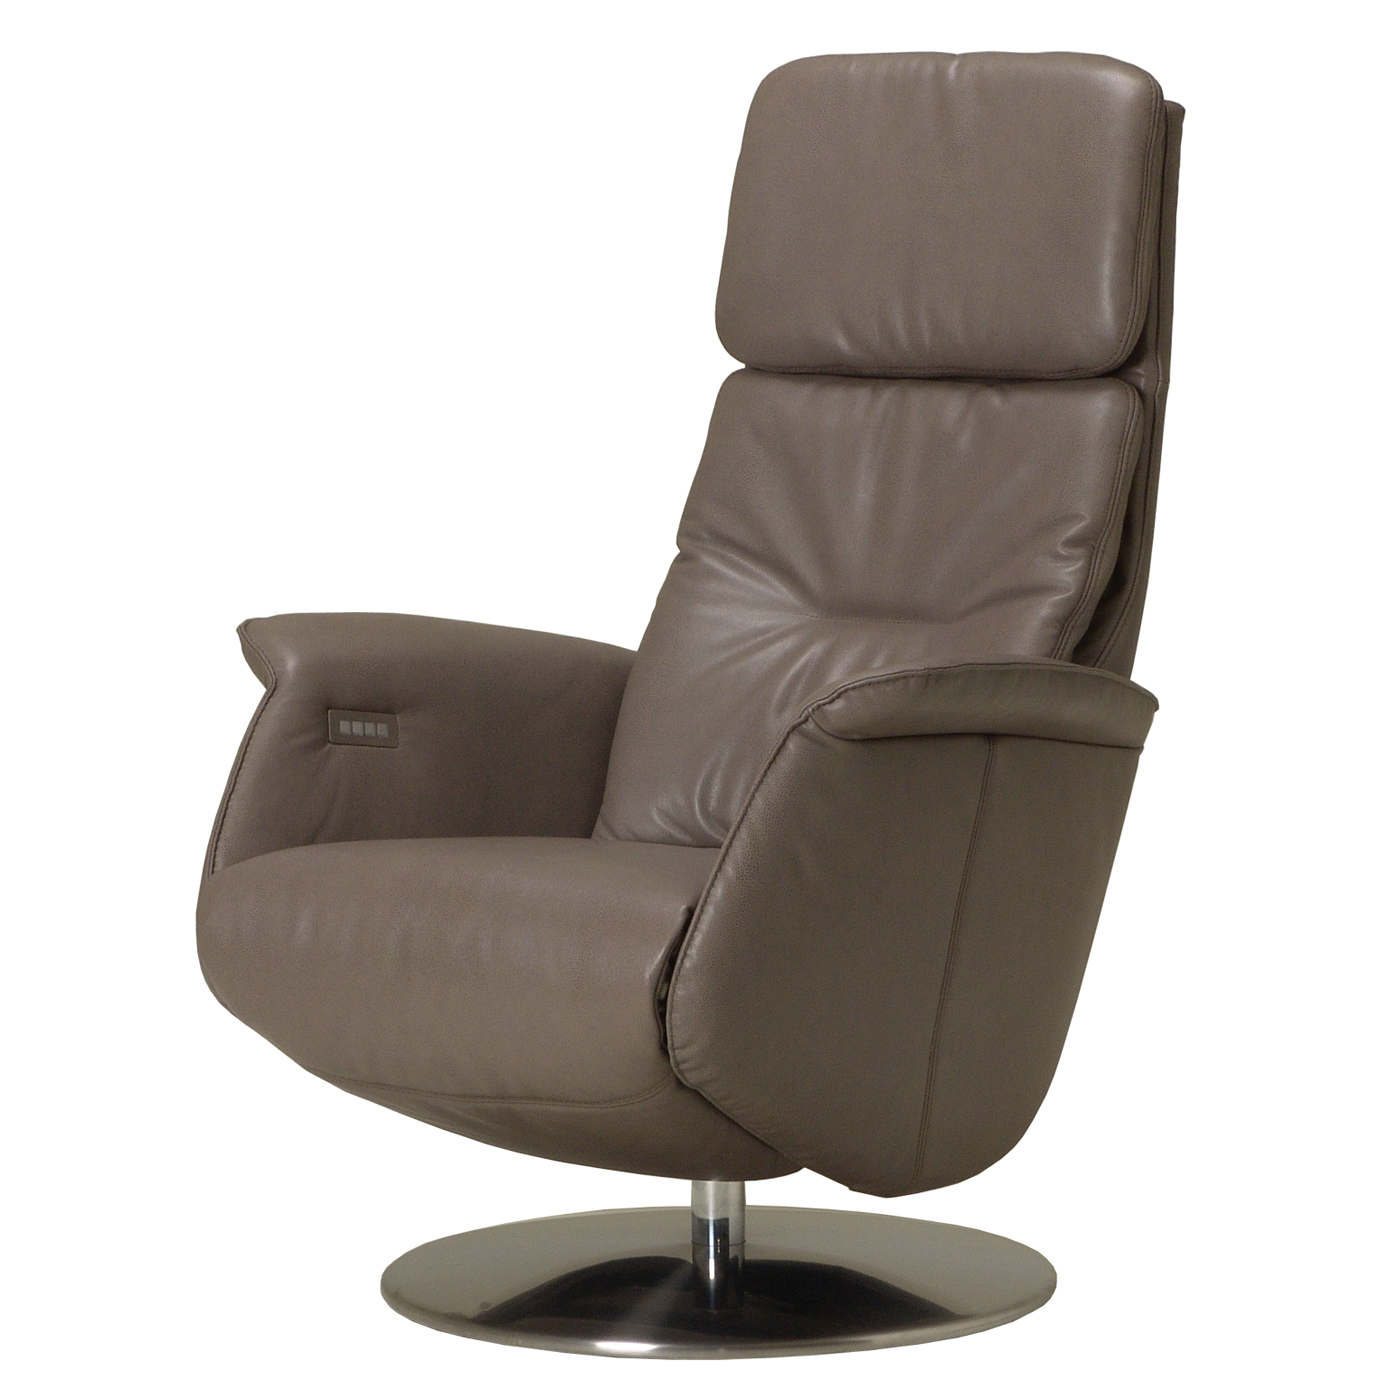 Twice TW215 relaxfauteuil